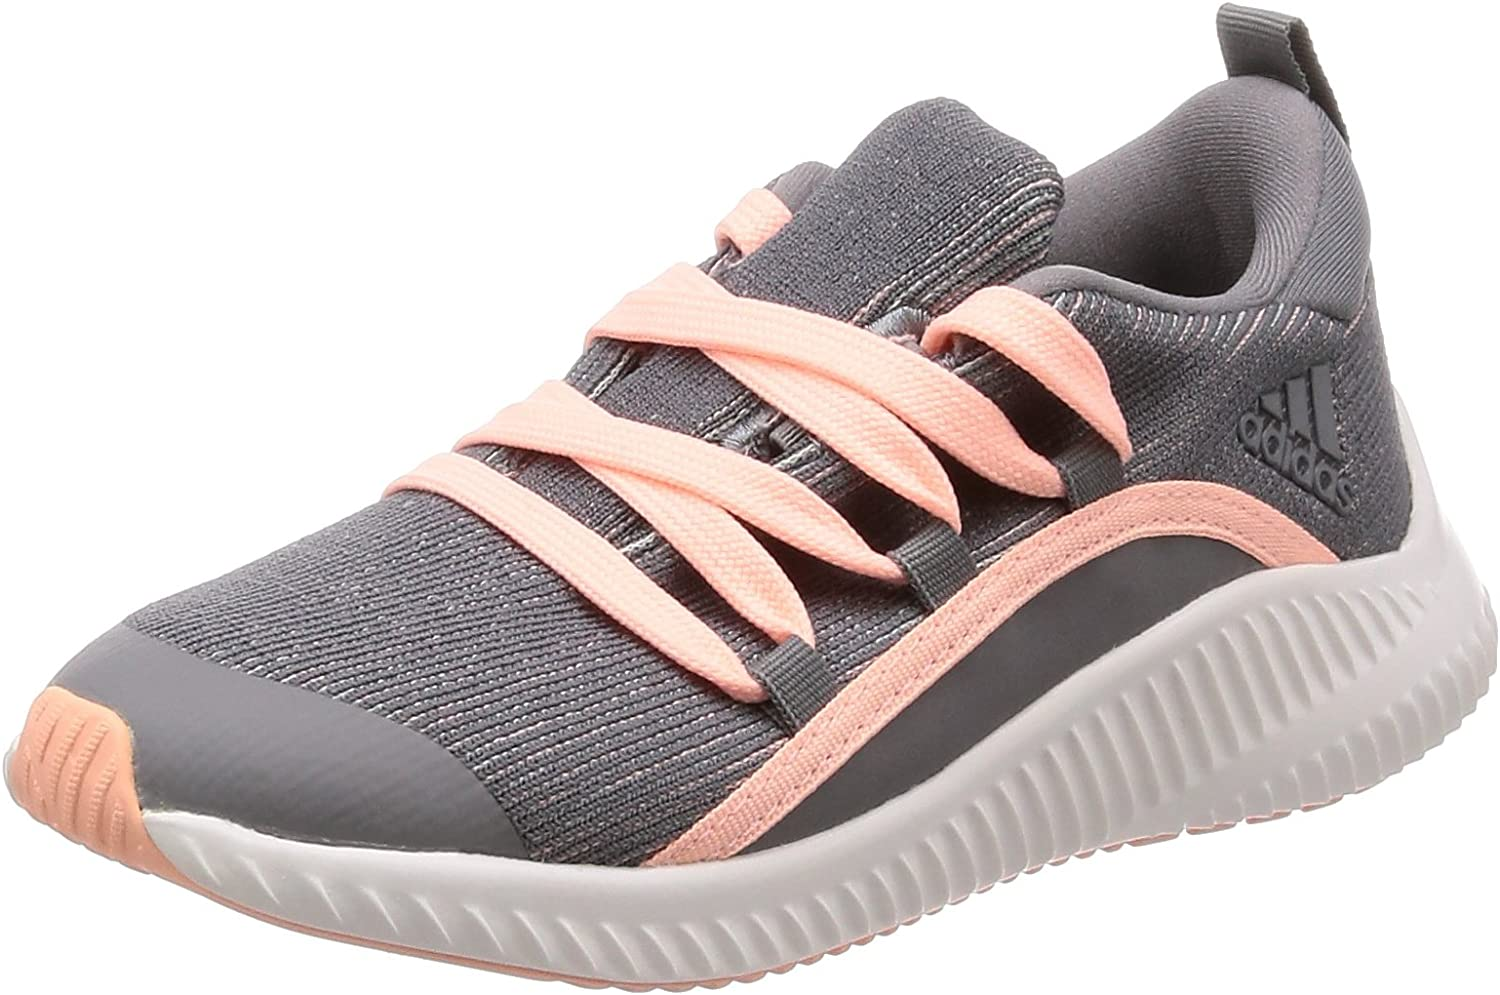 Adidas Adults' Fortarun X K Fitness shoes